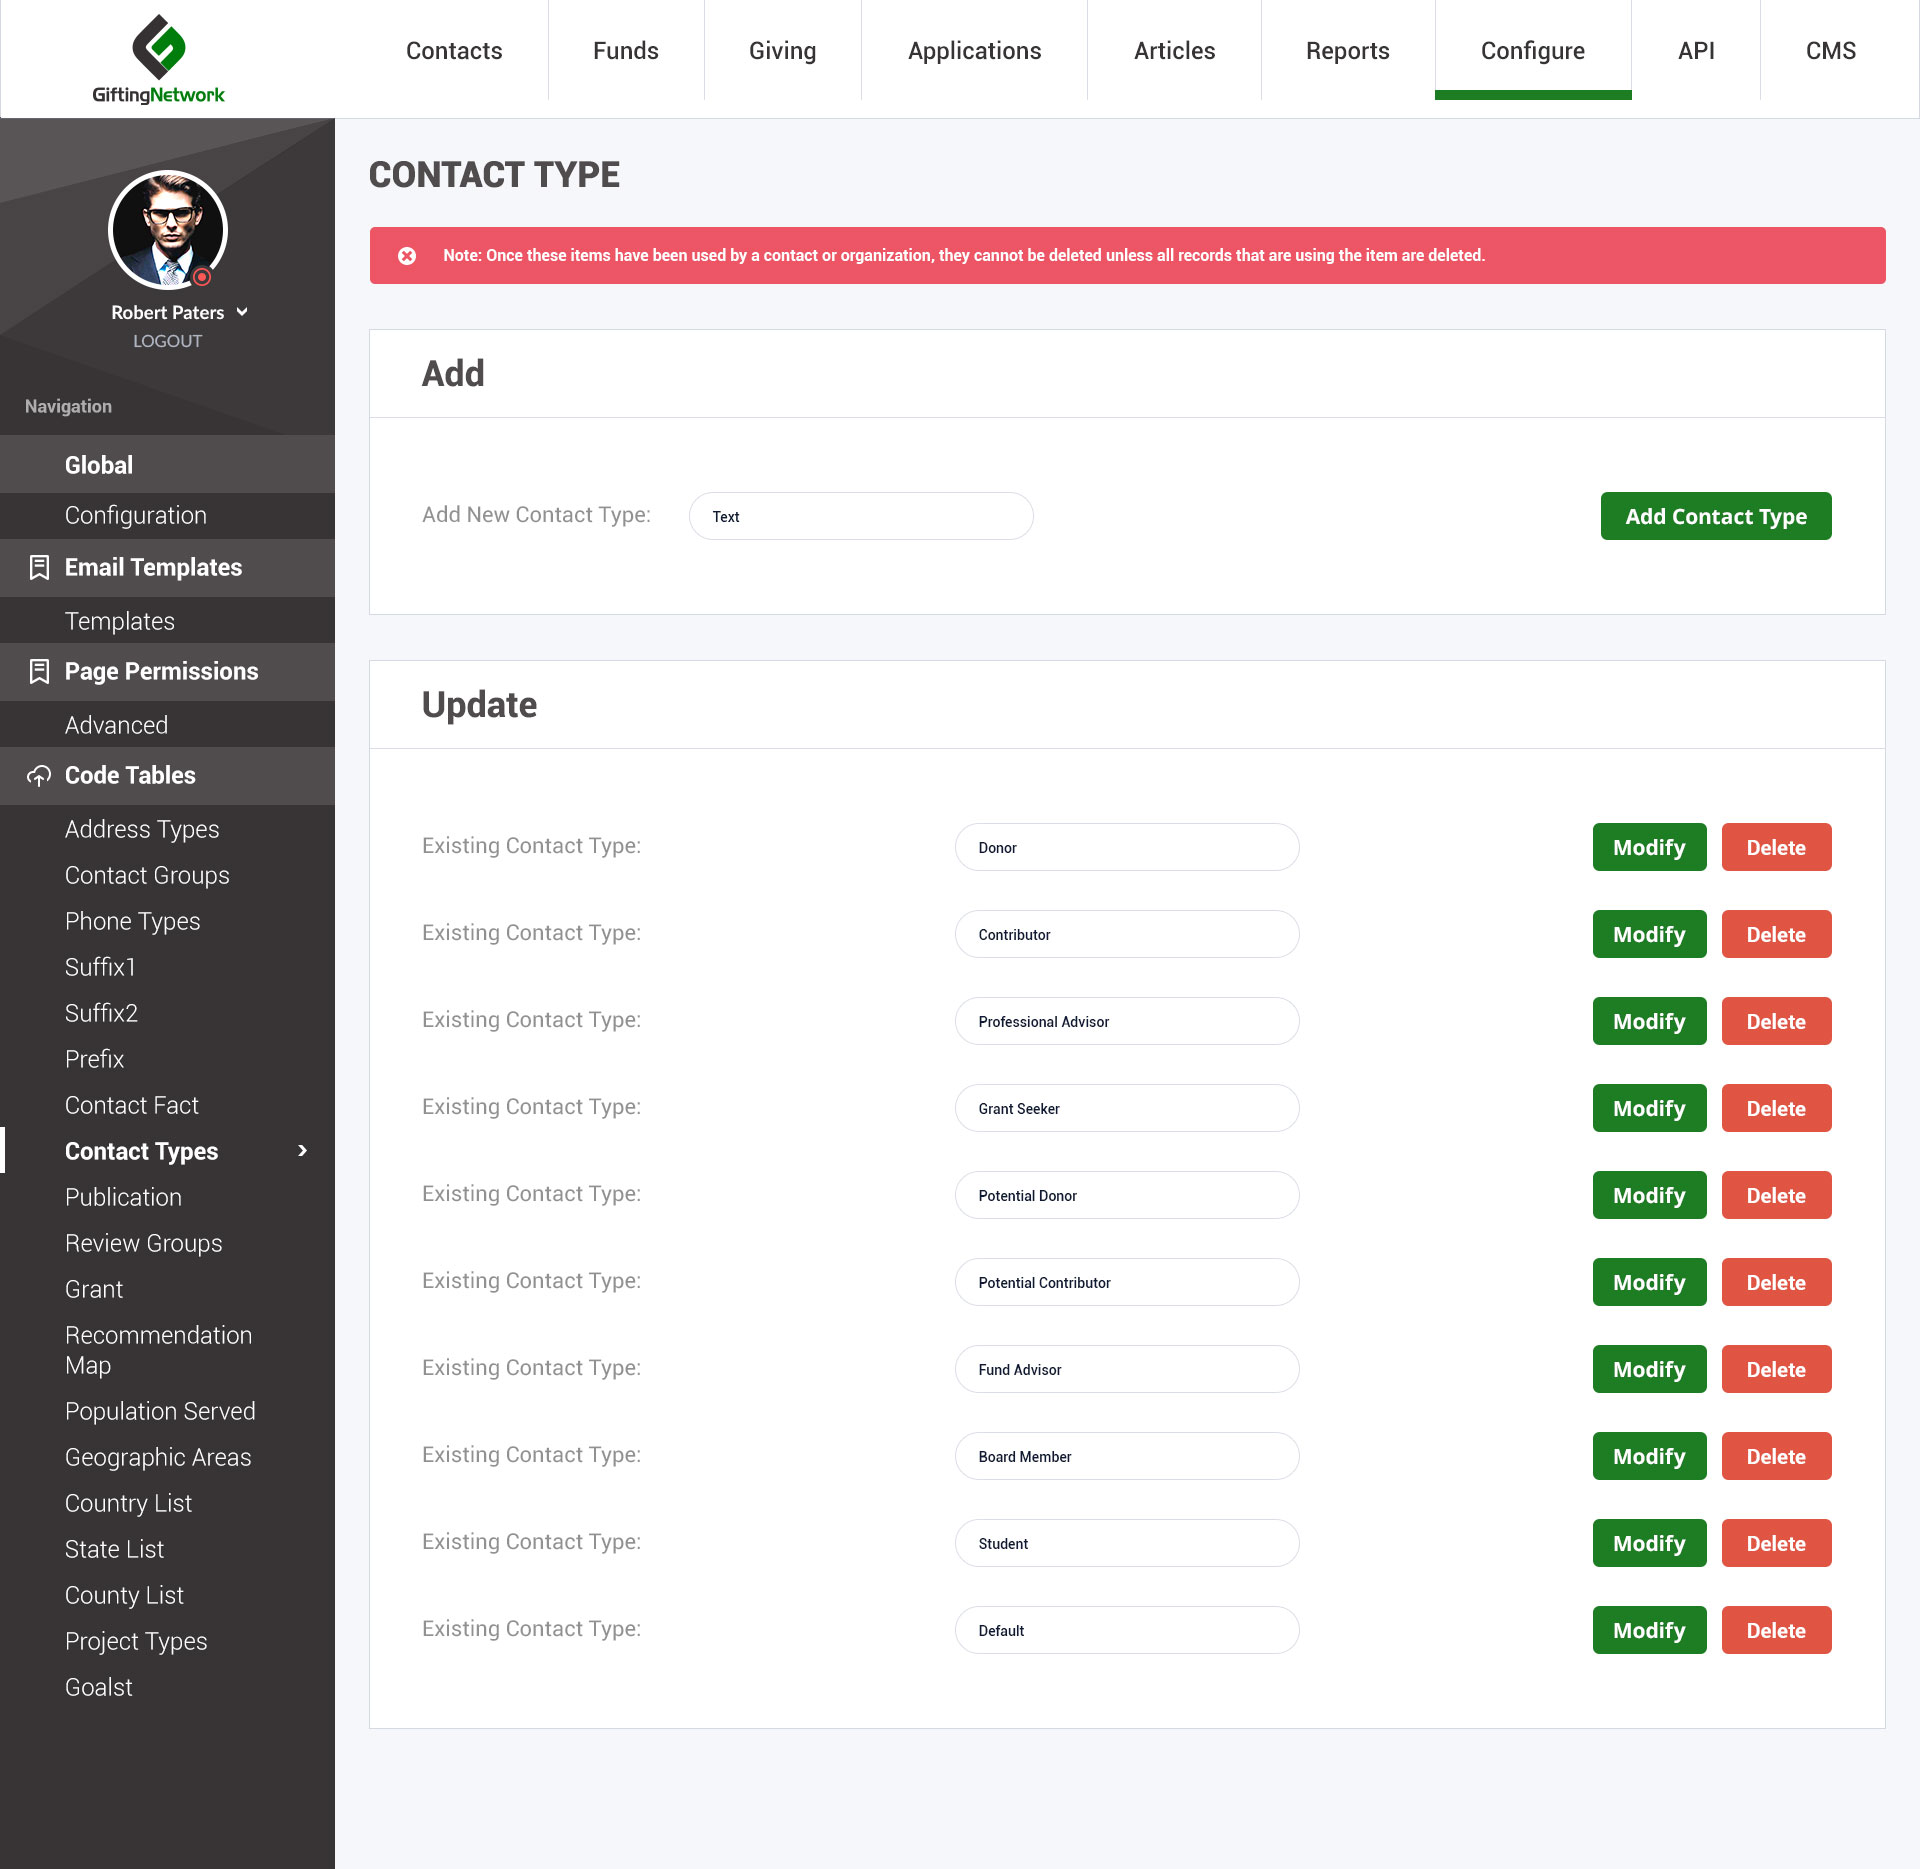 Gifting network - Dashboard - Web-Development - Merehead Development